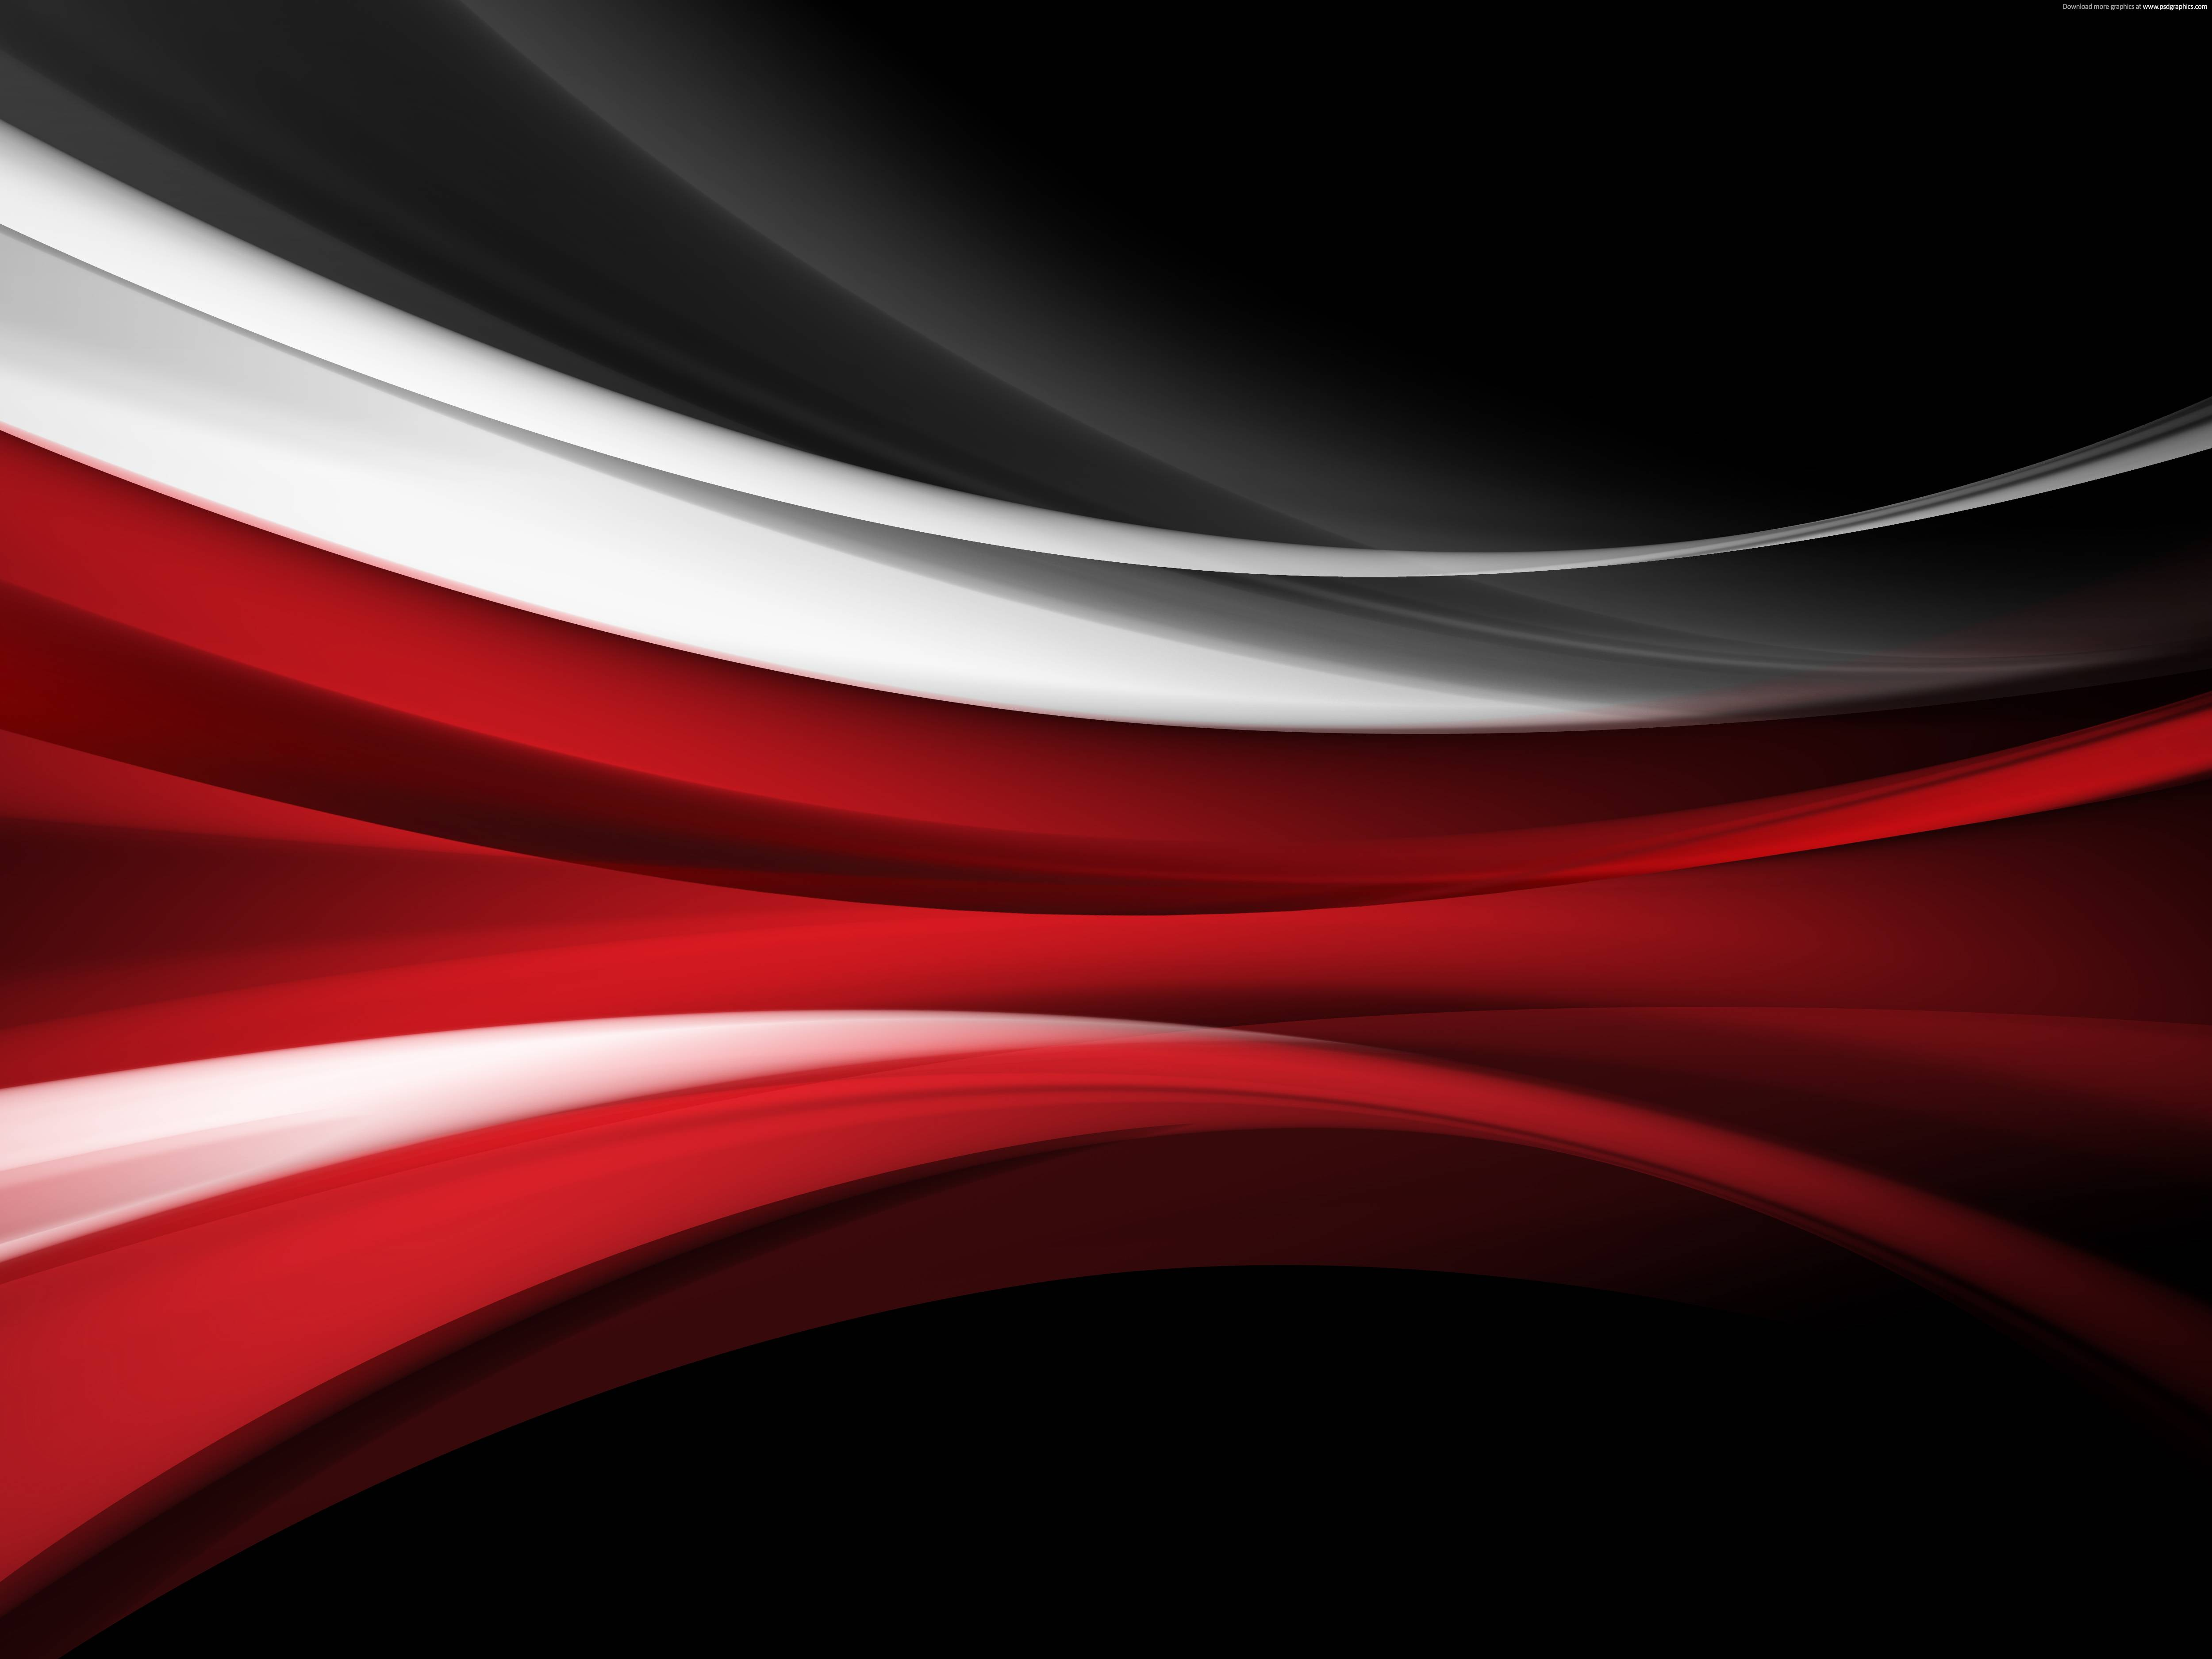 red and black abstract background photo #11531